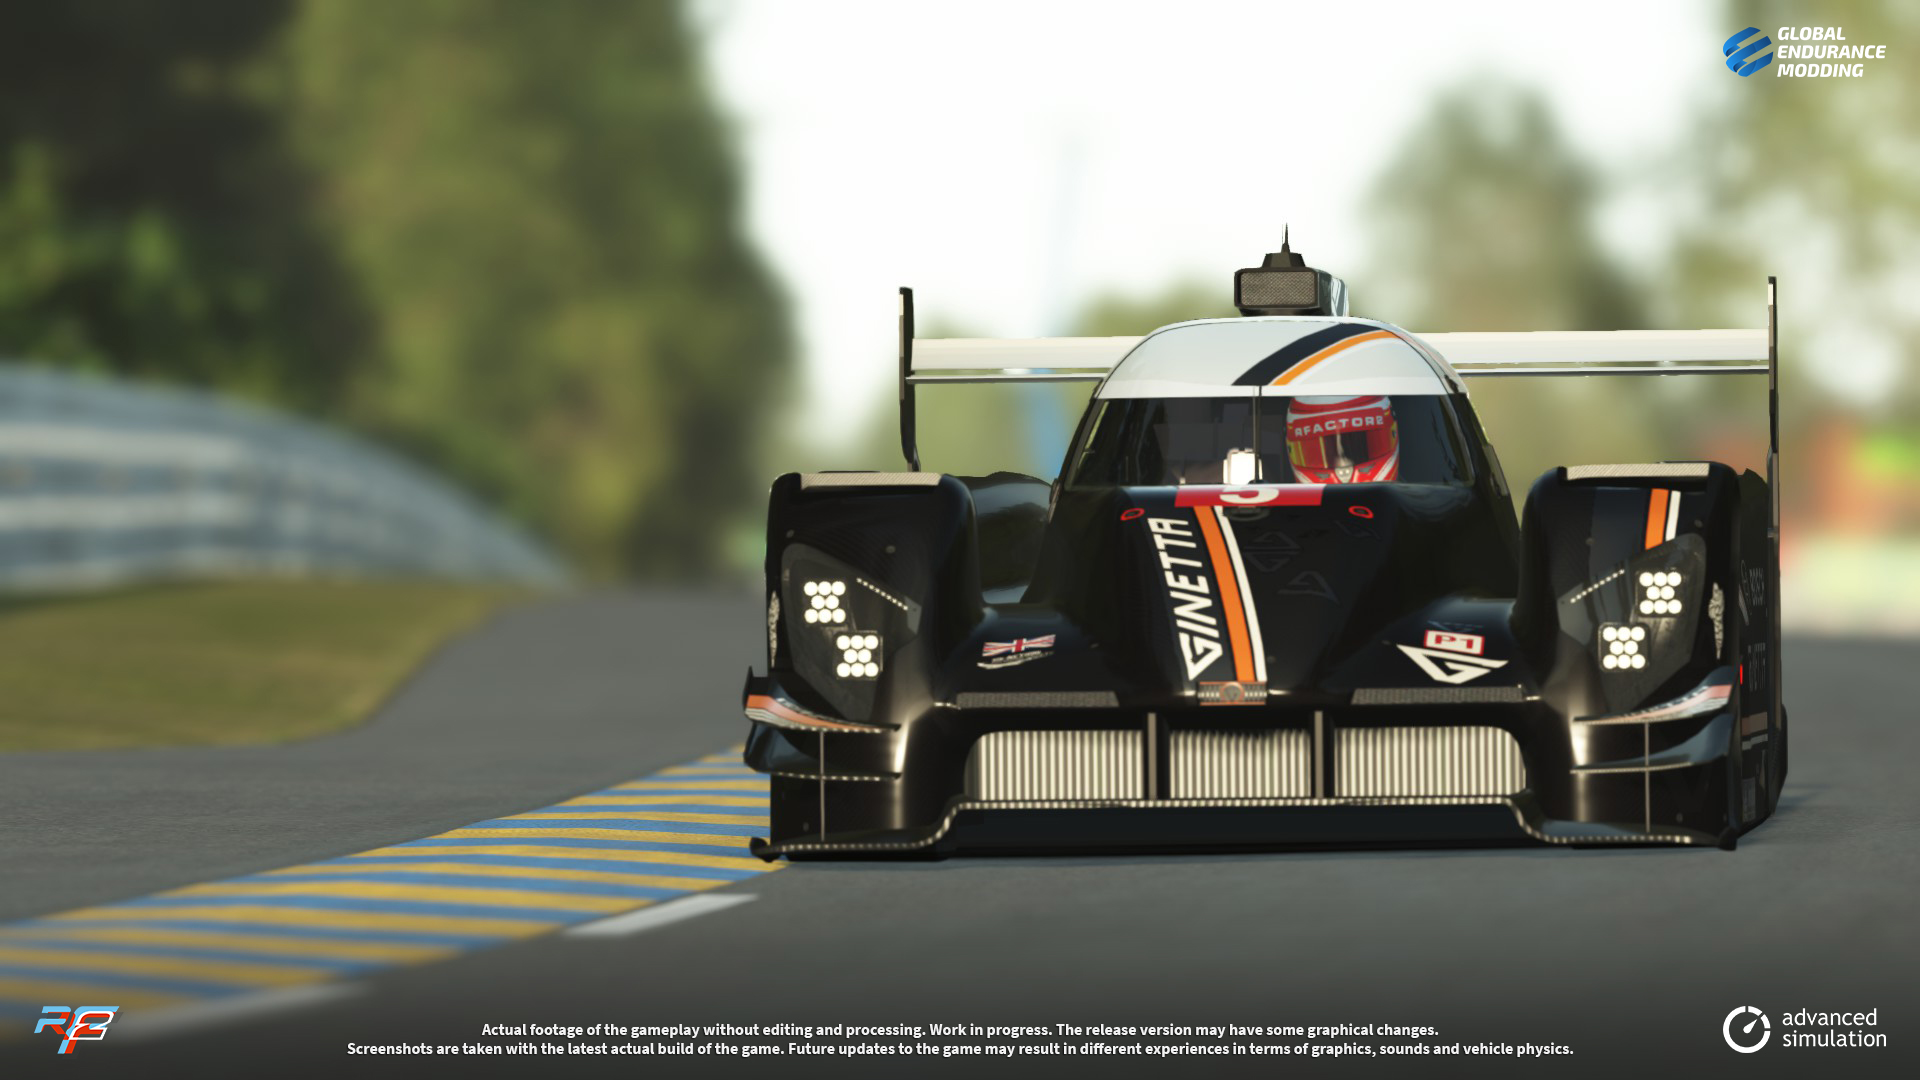 screen-009 Ginetta G60-LT-P1 LMP1 for rFactor 2 – More Previews